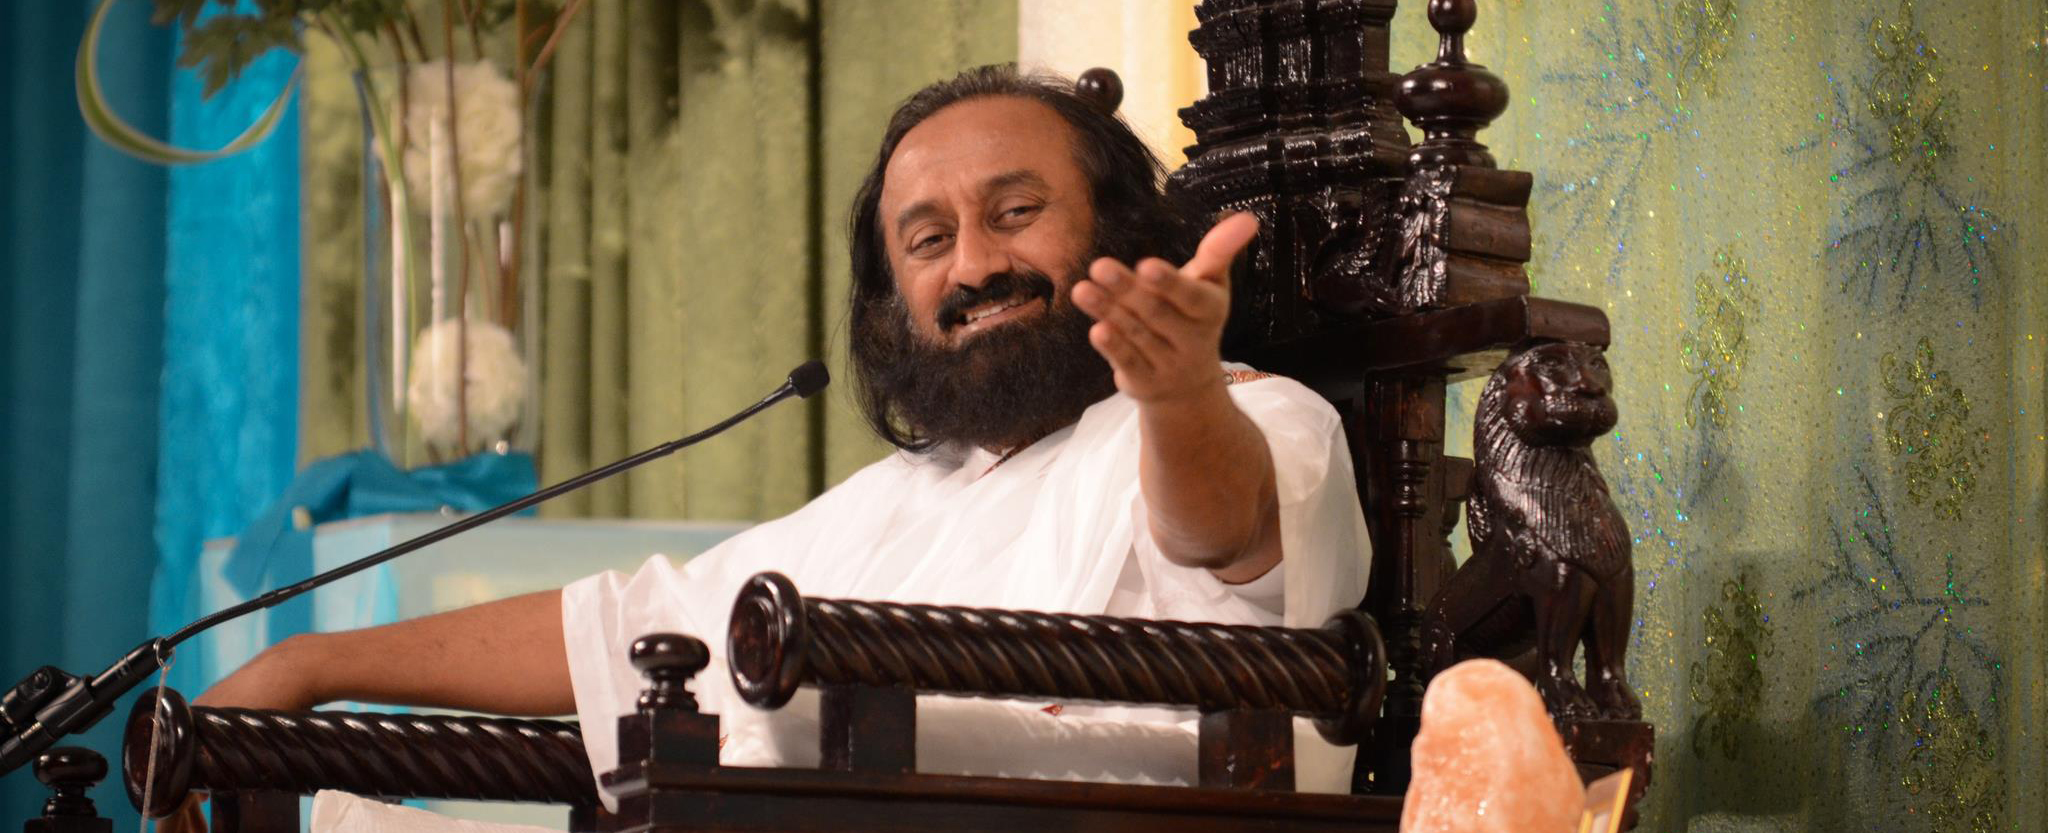 What is bothering you | Wisdom from Sri Sri Ravi Shankar